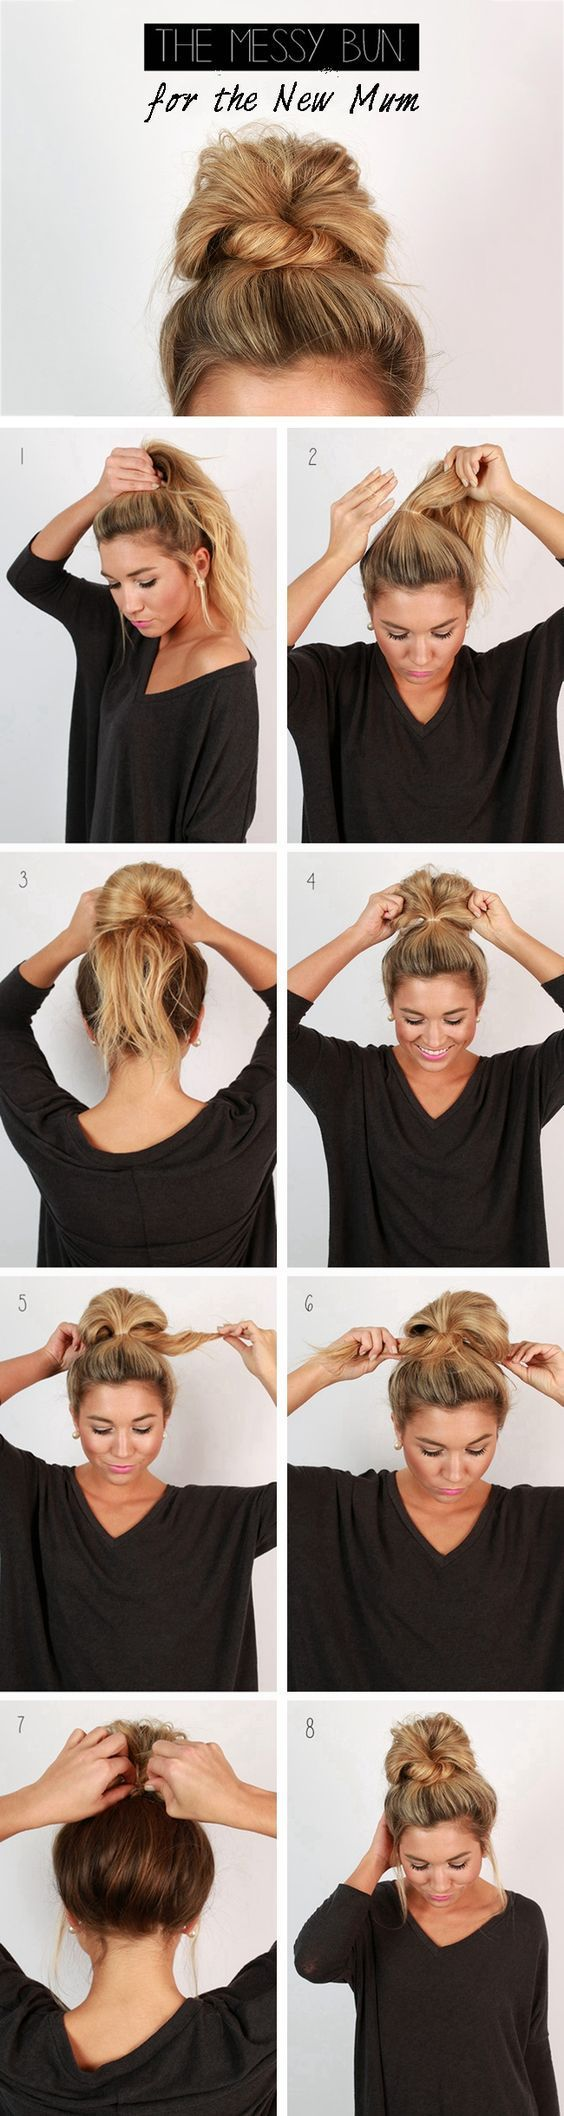 Sensational 1000 Ideas About Very Easy Hairstyles On Pinterest Easy Short Hairstyles For Black Women Fulllsitofus